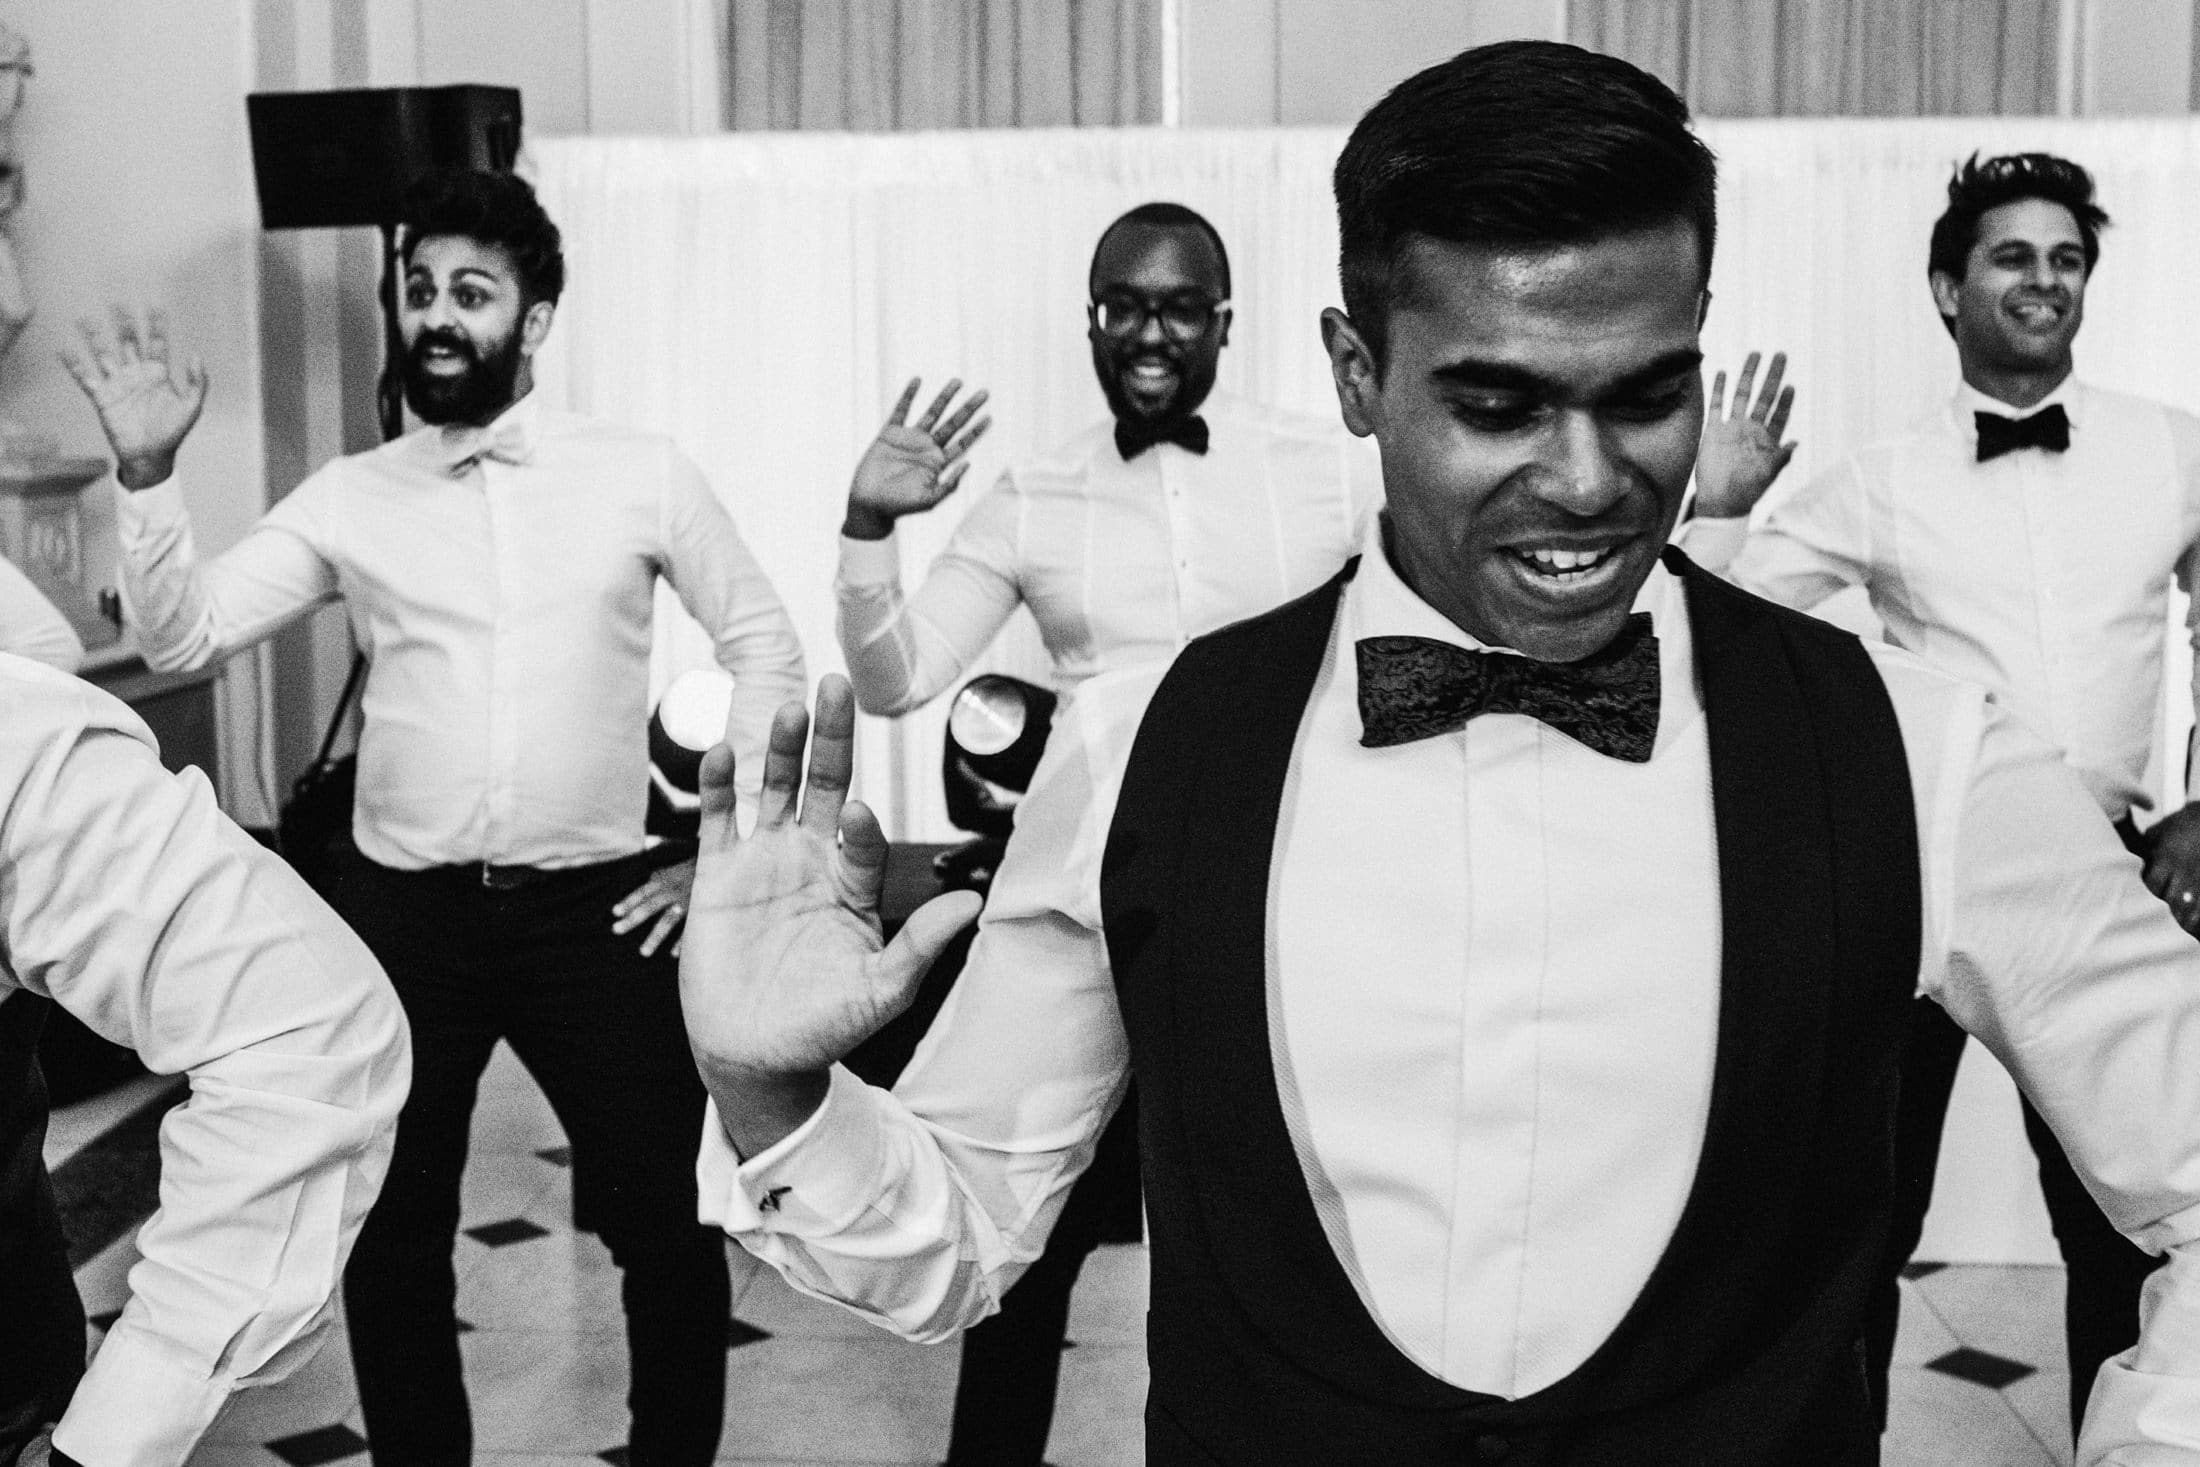 Groomsmen surprise dance